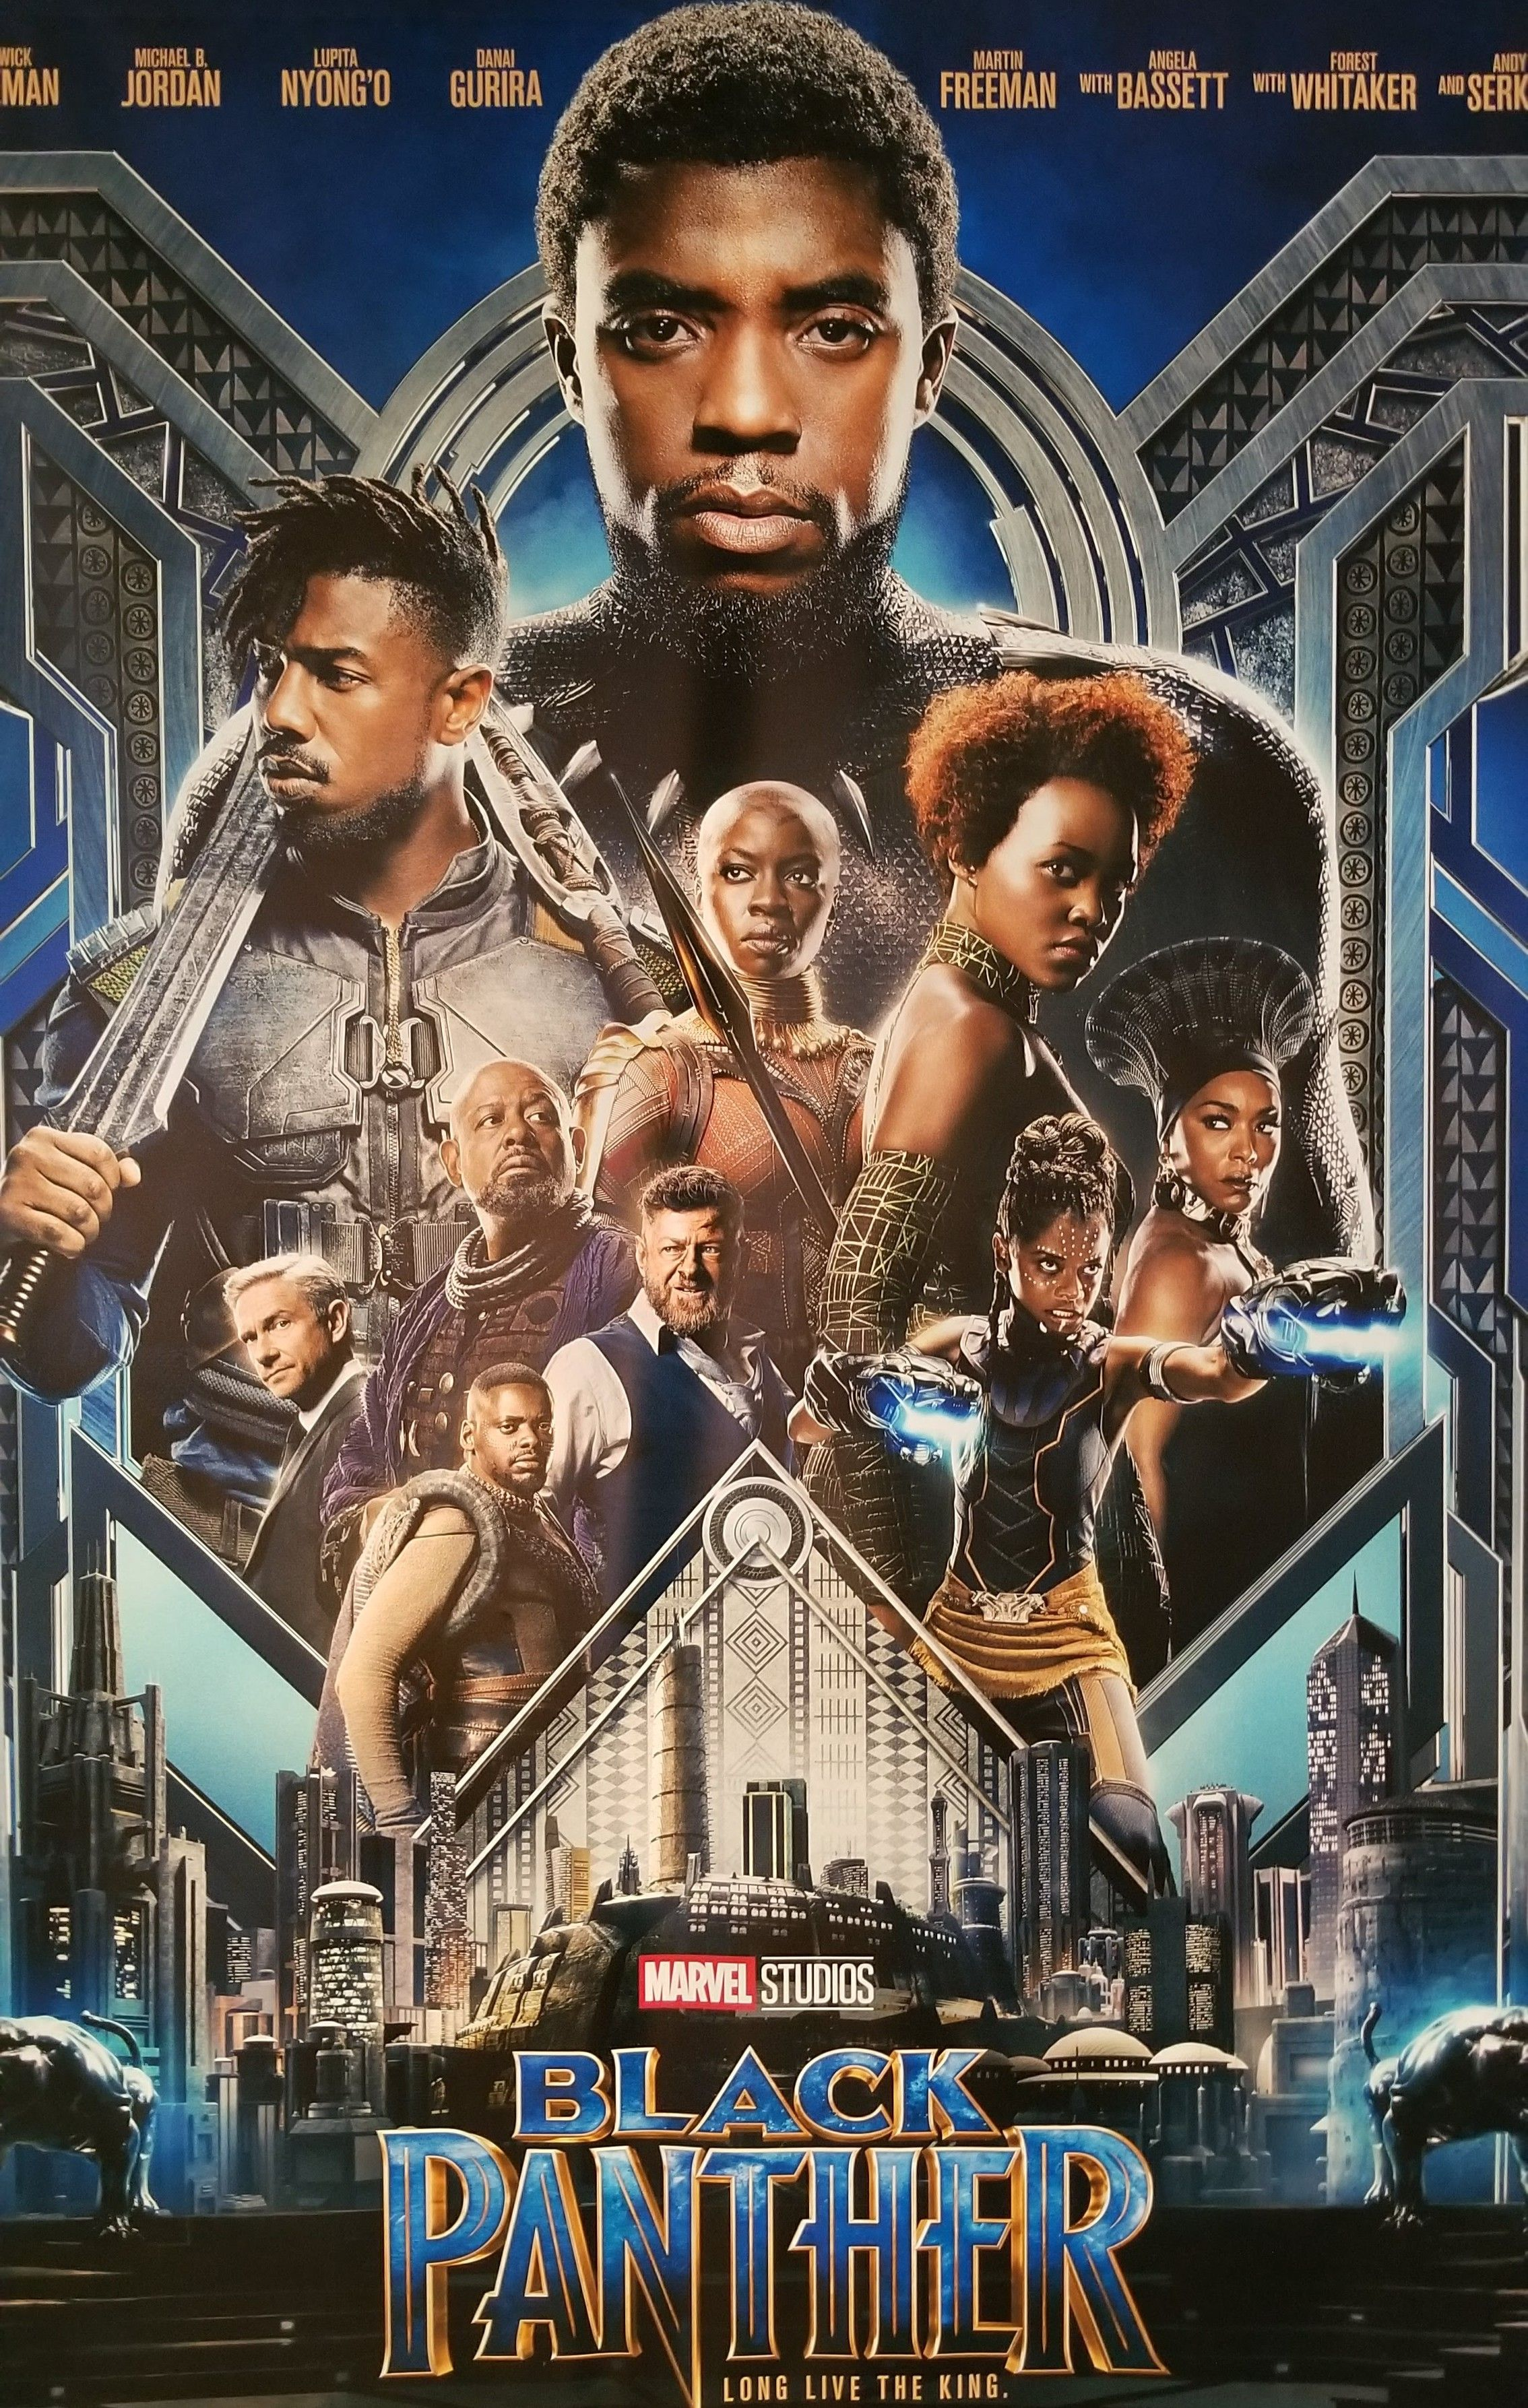 February 2018. Marvel films, Black panther, 2018 movies